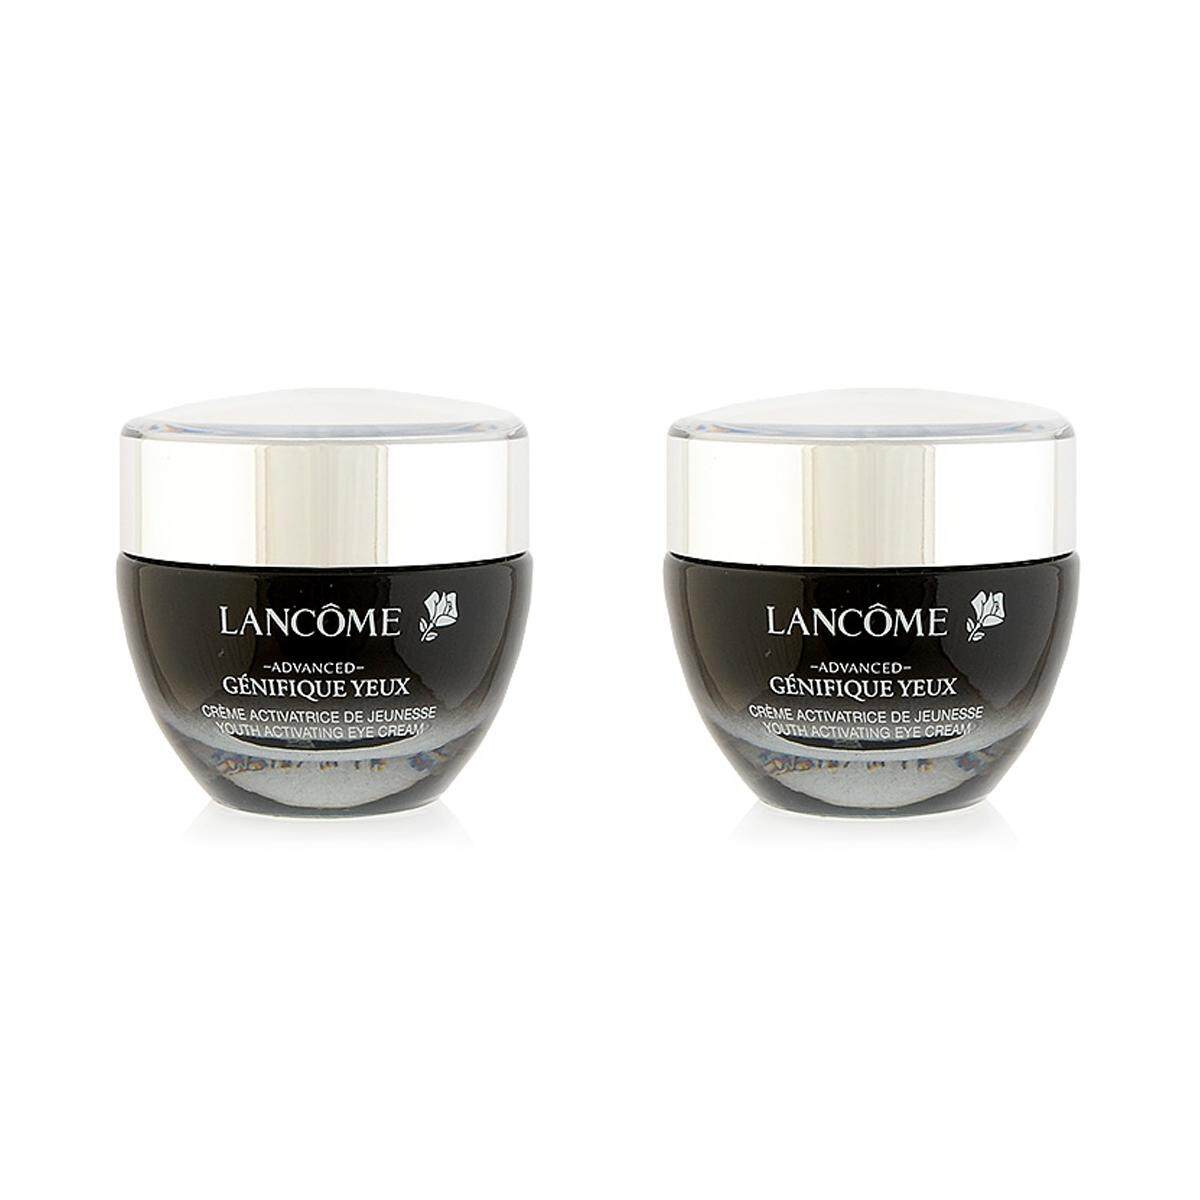 2 X LancÔme Advanced Genifique Yeux Youth Activating Eye Cream 0.5oz, 15ml.